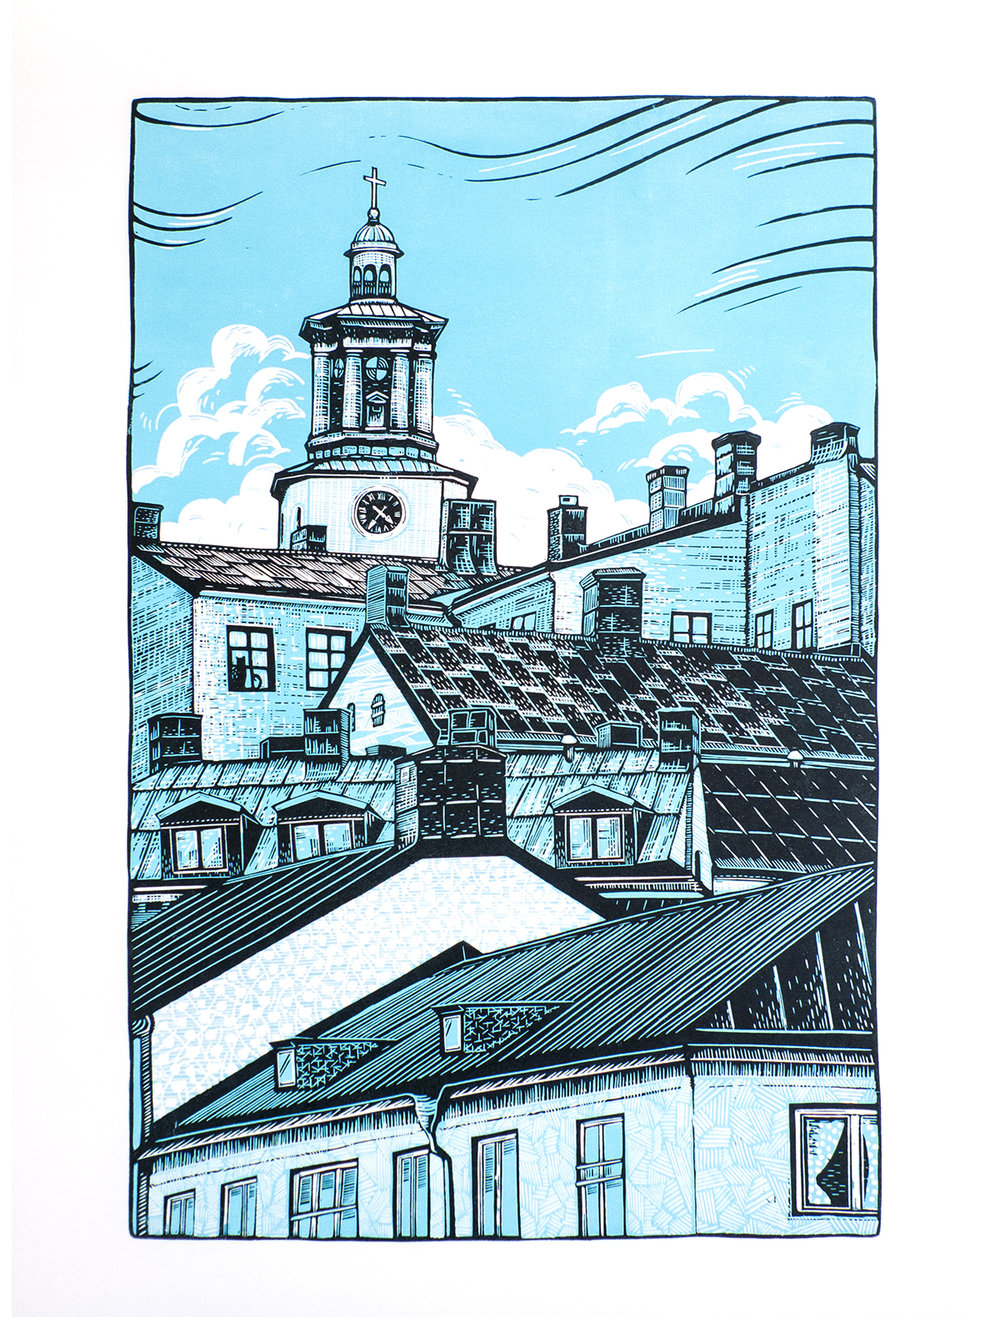 S:ta Maria Magdalena kyrka , reduction linocut on Hosho paper, 40 x 55cm, edition of 10.